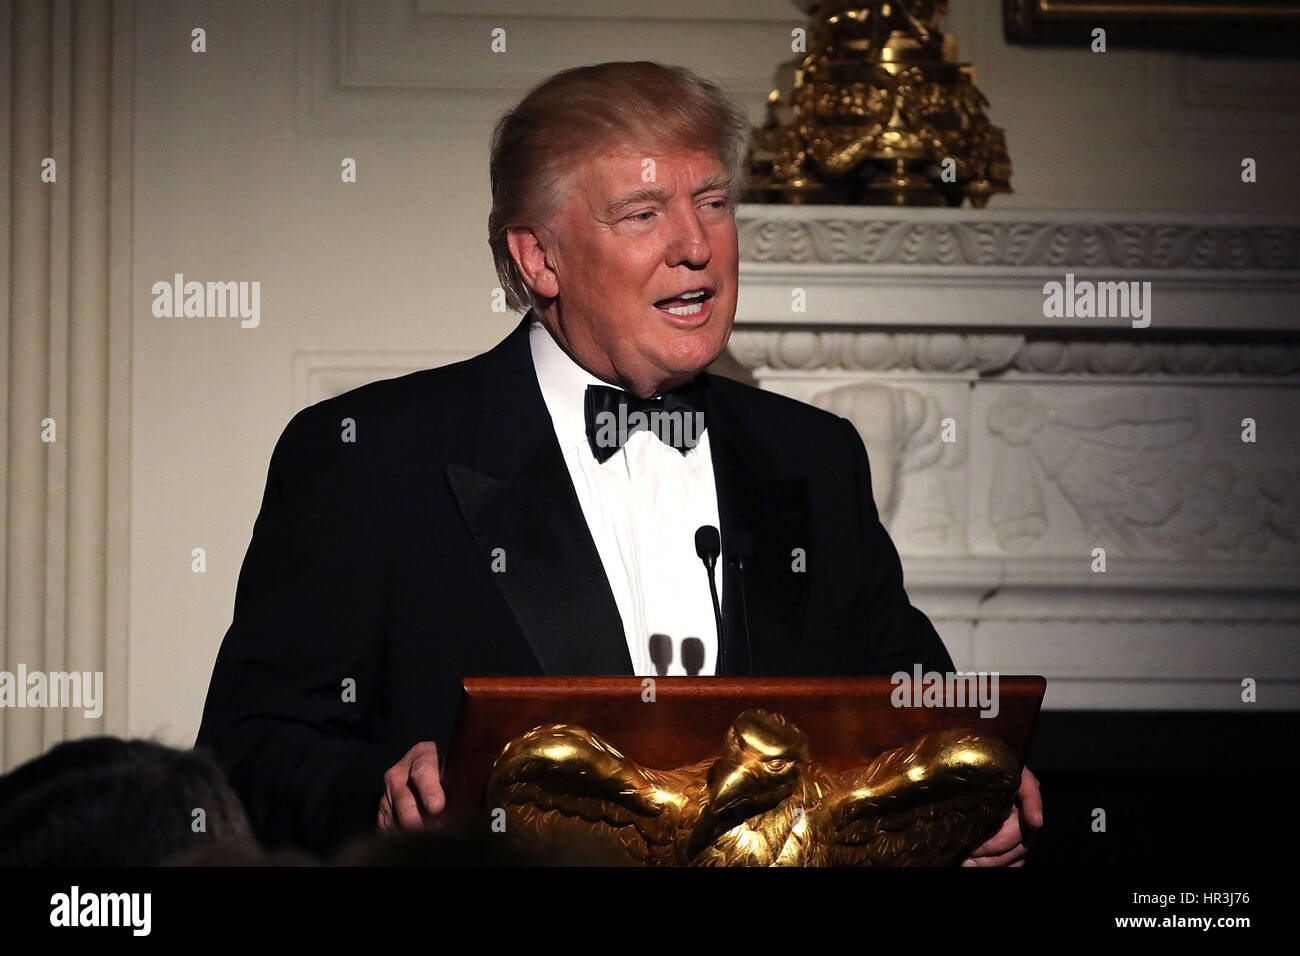 Washington DC, USA. 26th February 2017. United States President Donald Trump delivers brief remarks before a toast - Stock Image